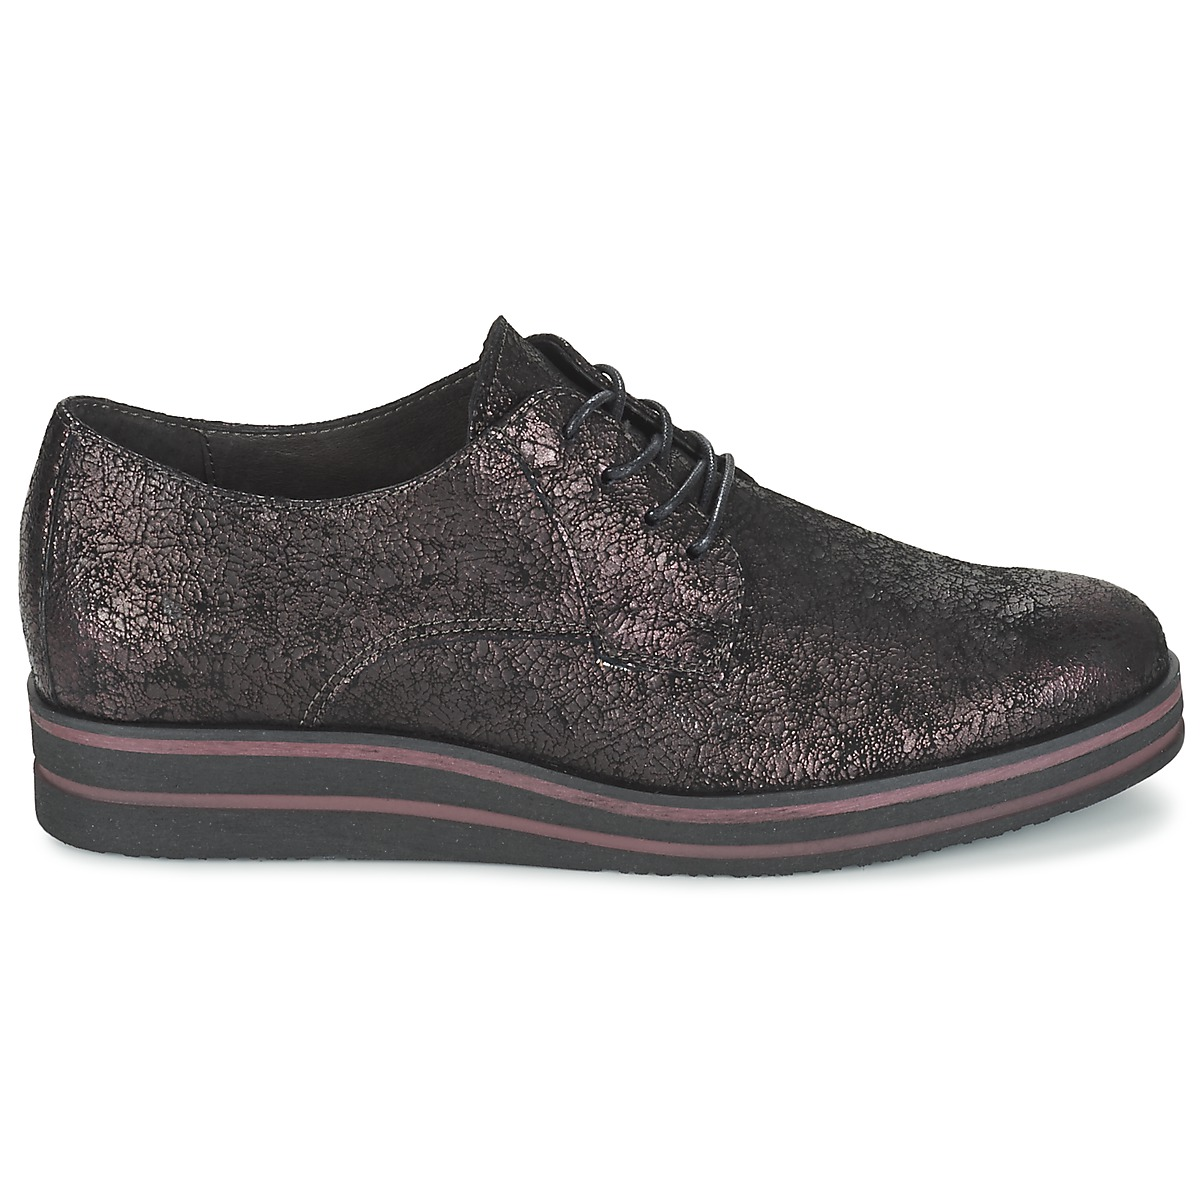 Green Outlet Shoes In Koipxzu Bordeaux Dream Women Fansita Derby MSpUGqzV